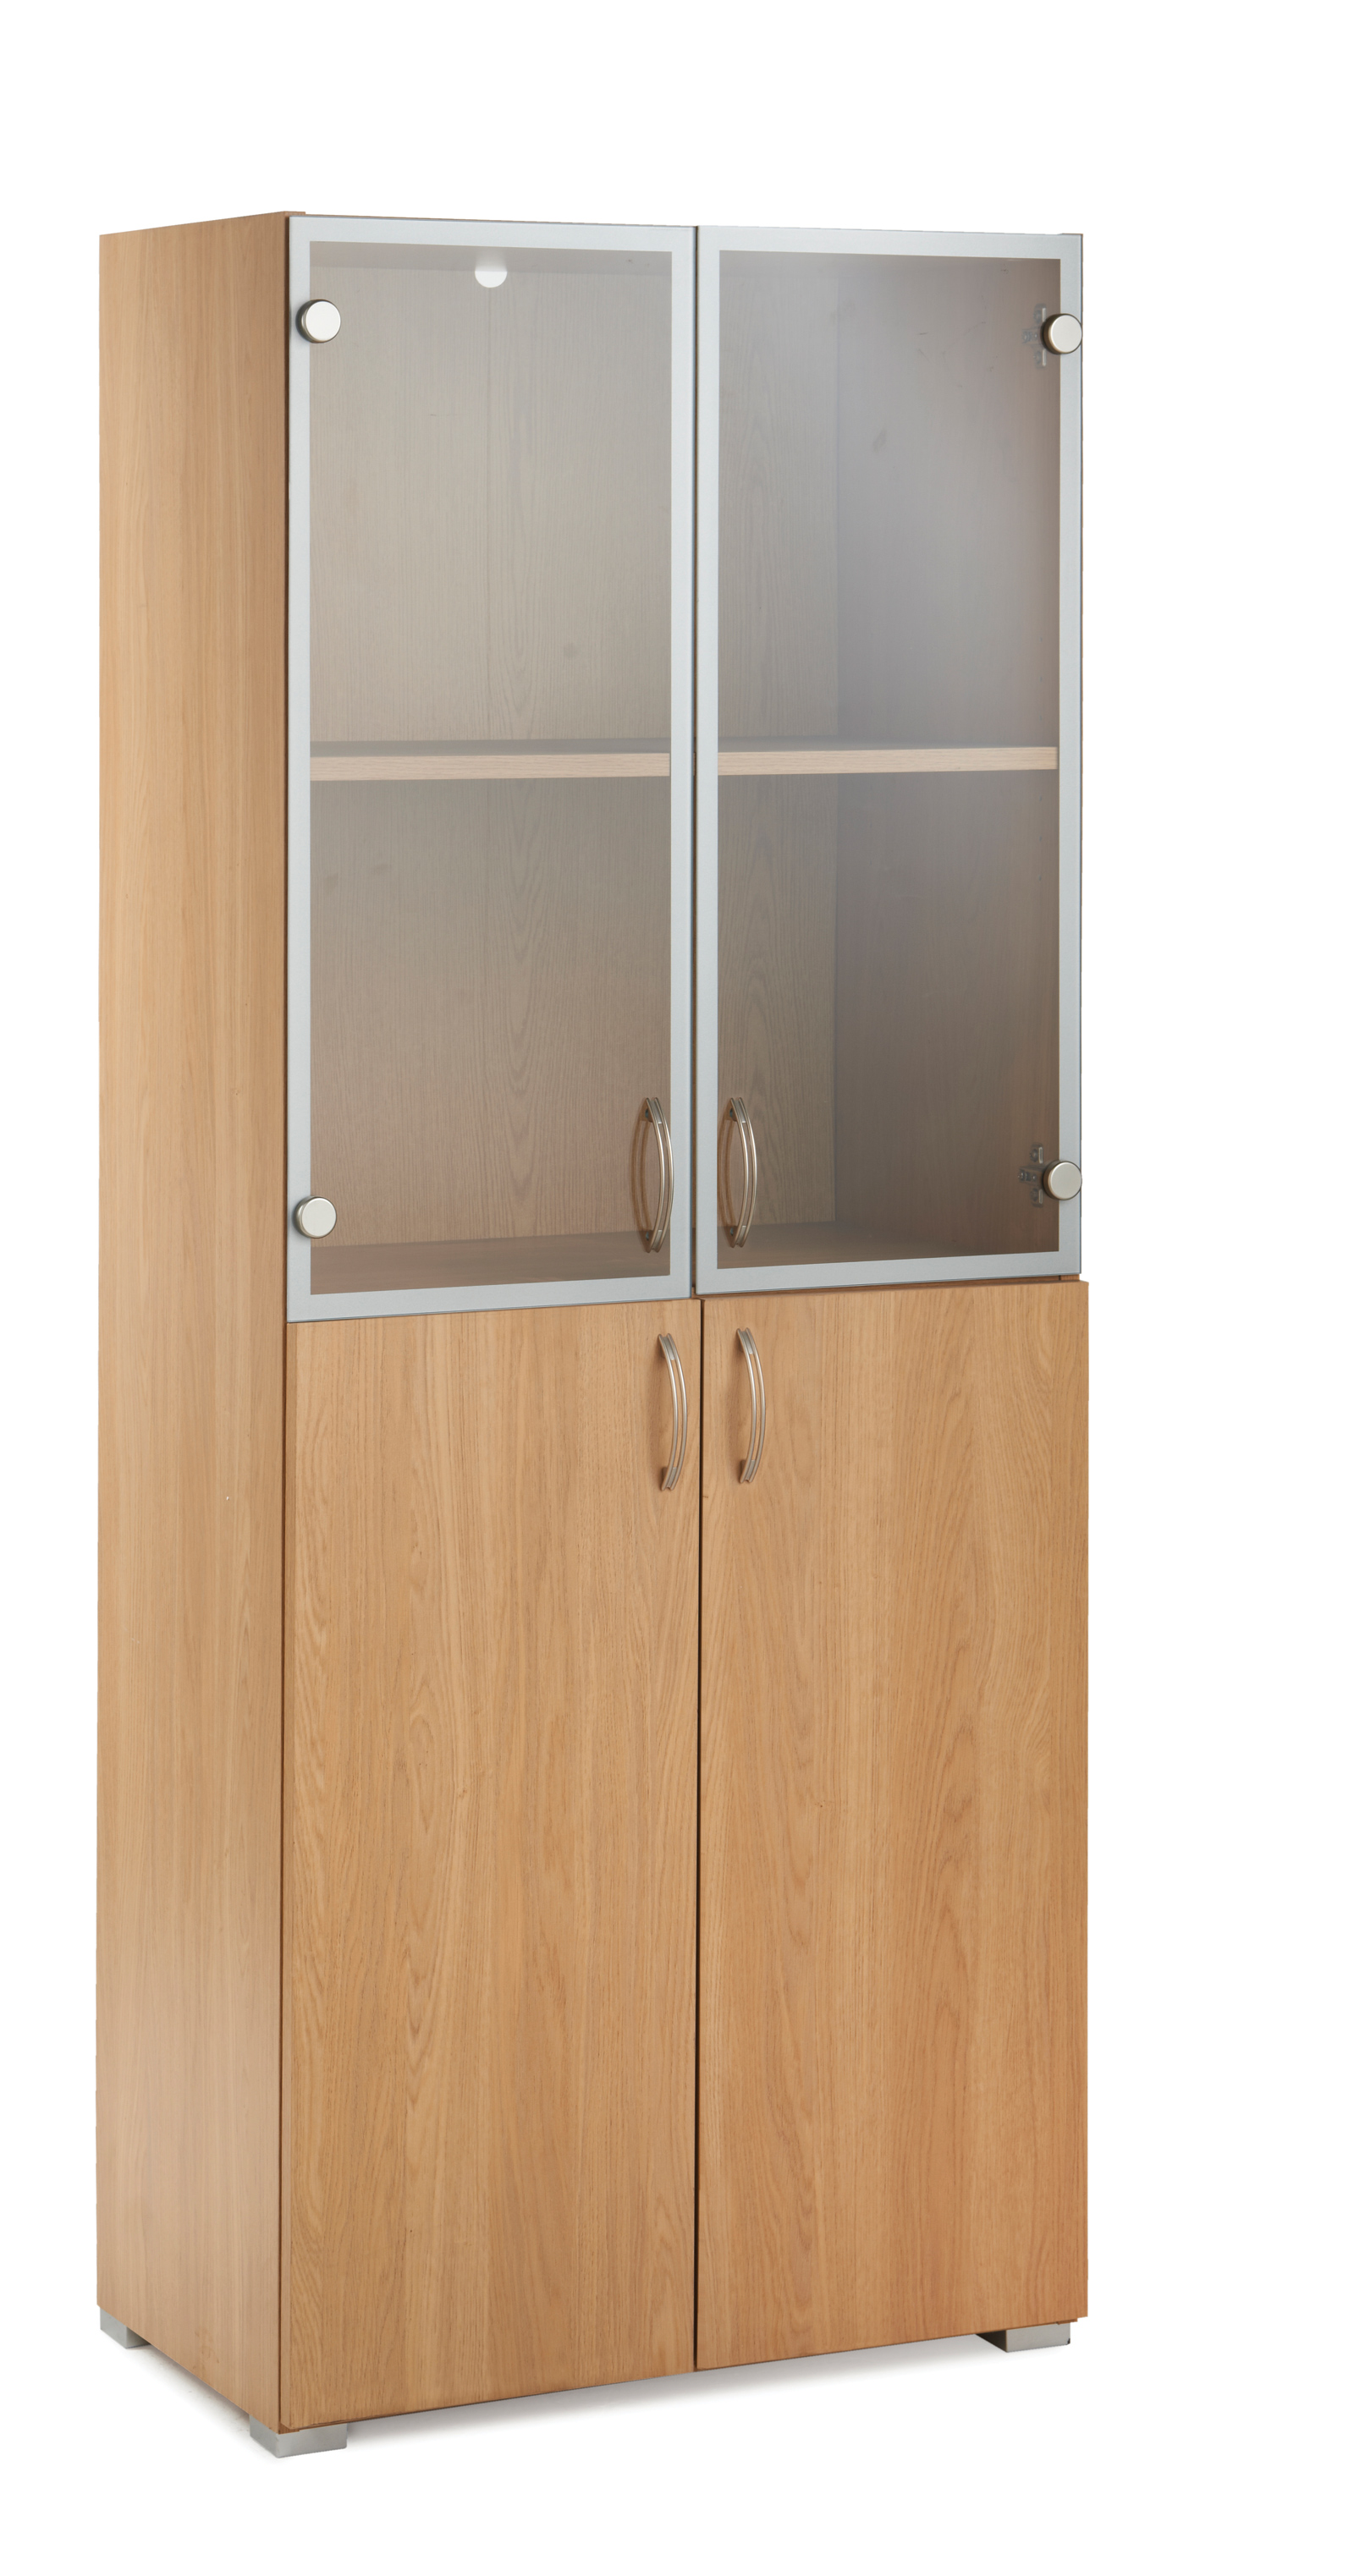 Dams Urban/Eco Glass Door Combination Unit